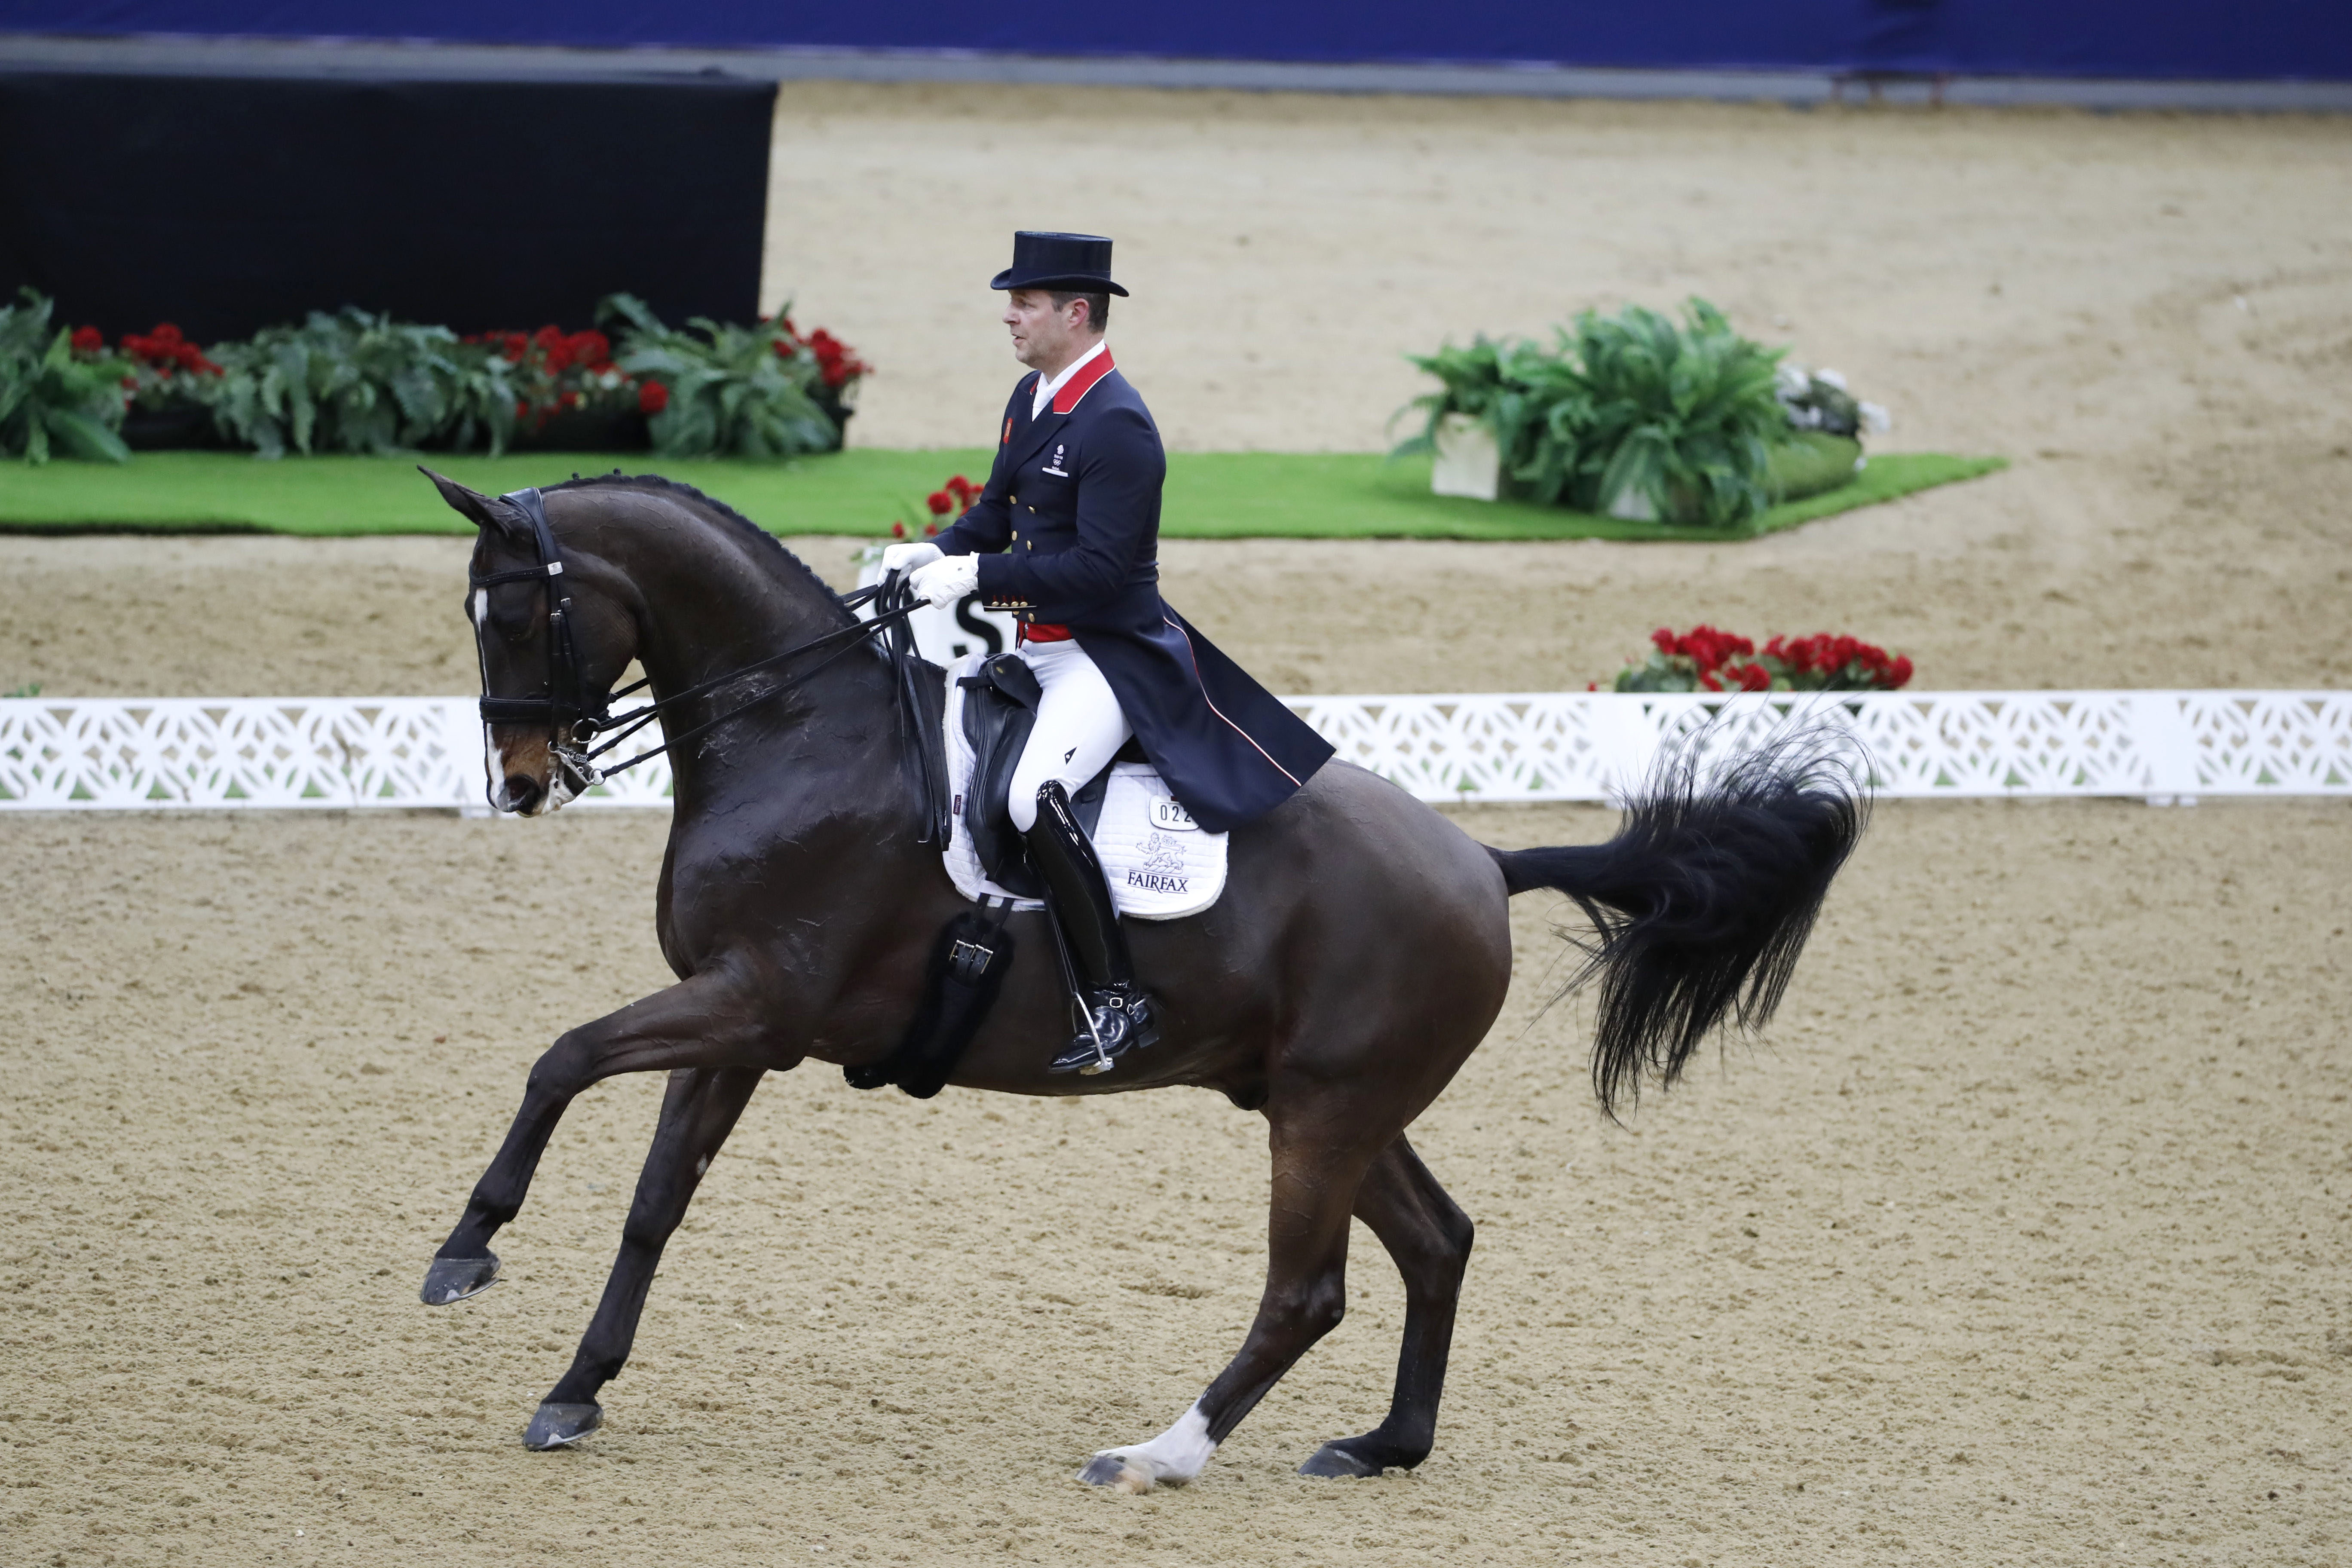 Horse Times Egypt: Equestrian Magazine :News :DRESSAGE GRAND PRIX HIGHLIGHTS SECOND DAY OF CHI AL SHAQAB